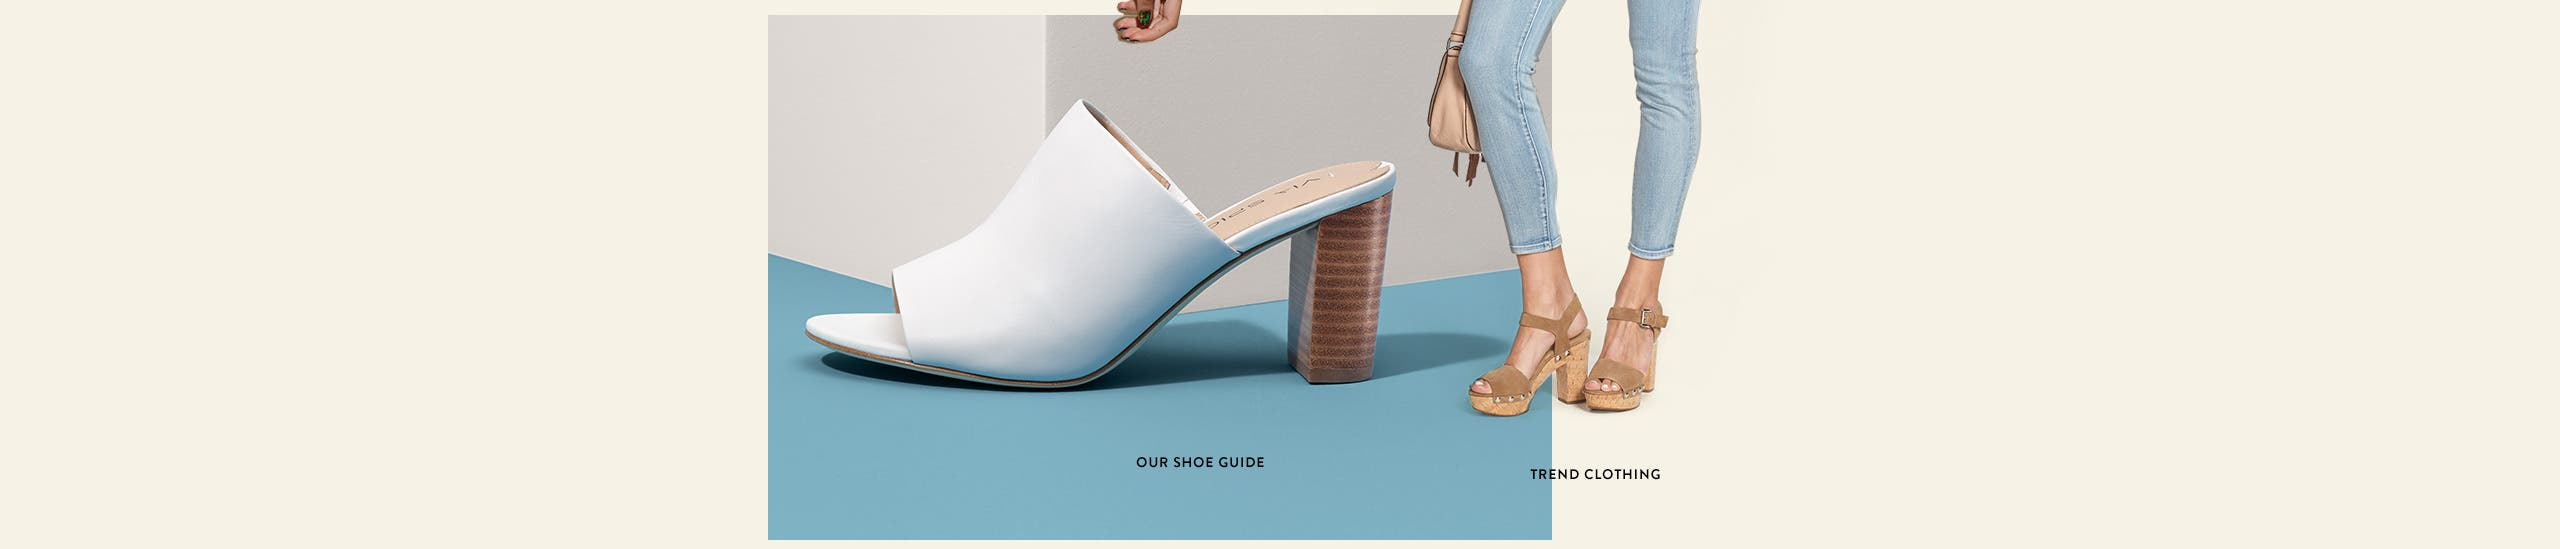 Our women's shoe guide on what's hot this season. Plus new styles in women's trend clothing.